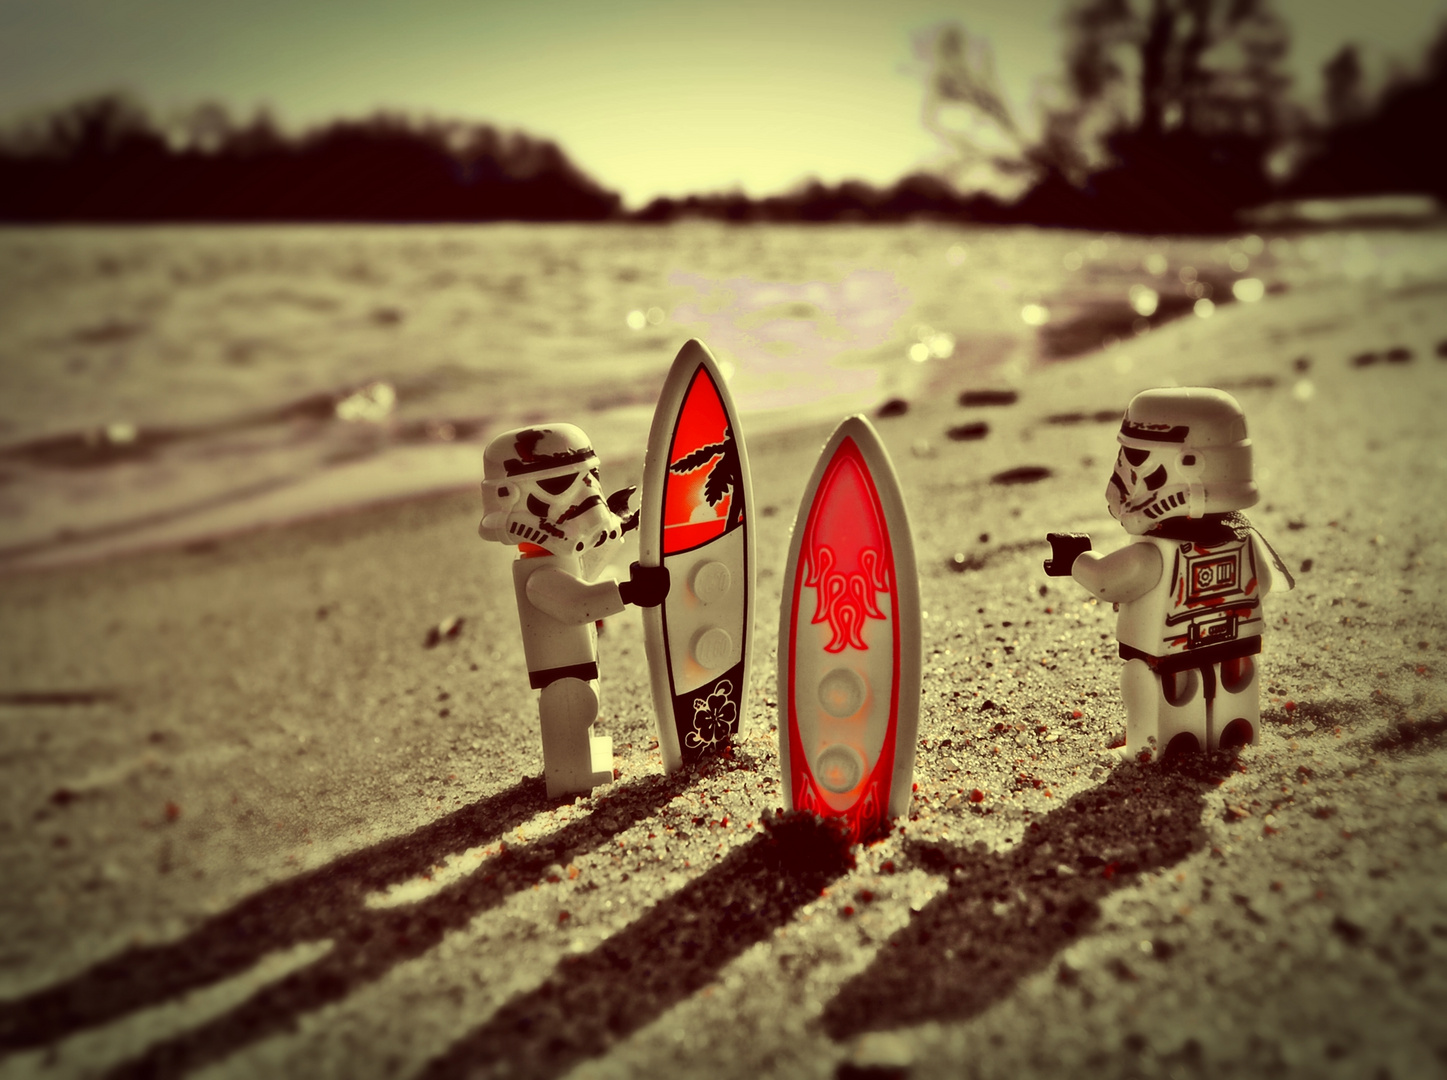 Let's go surfin' !